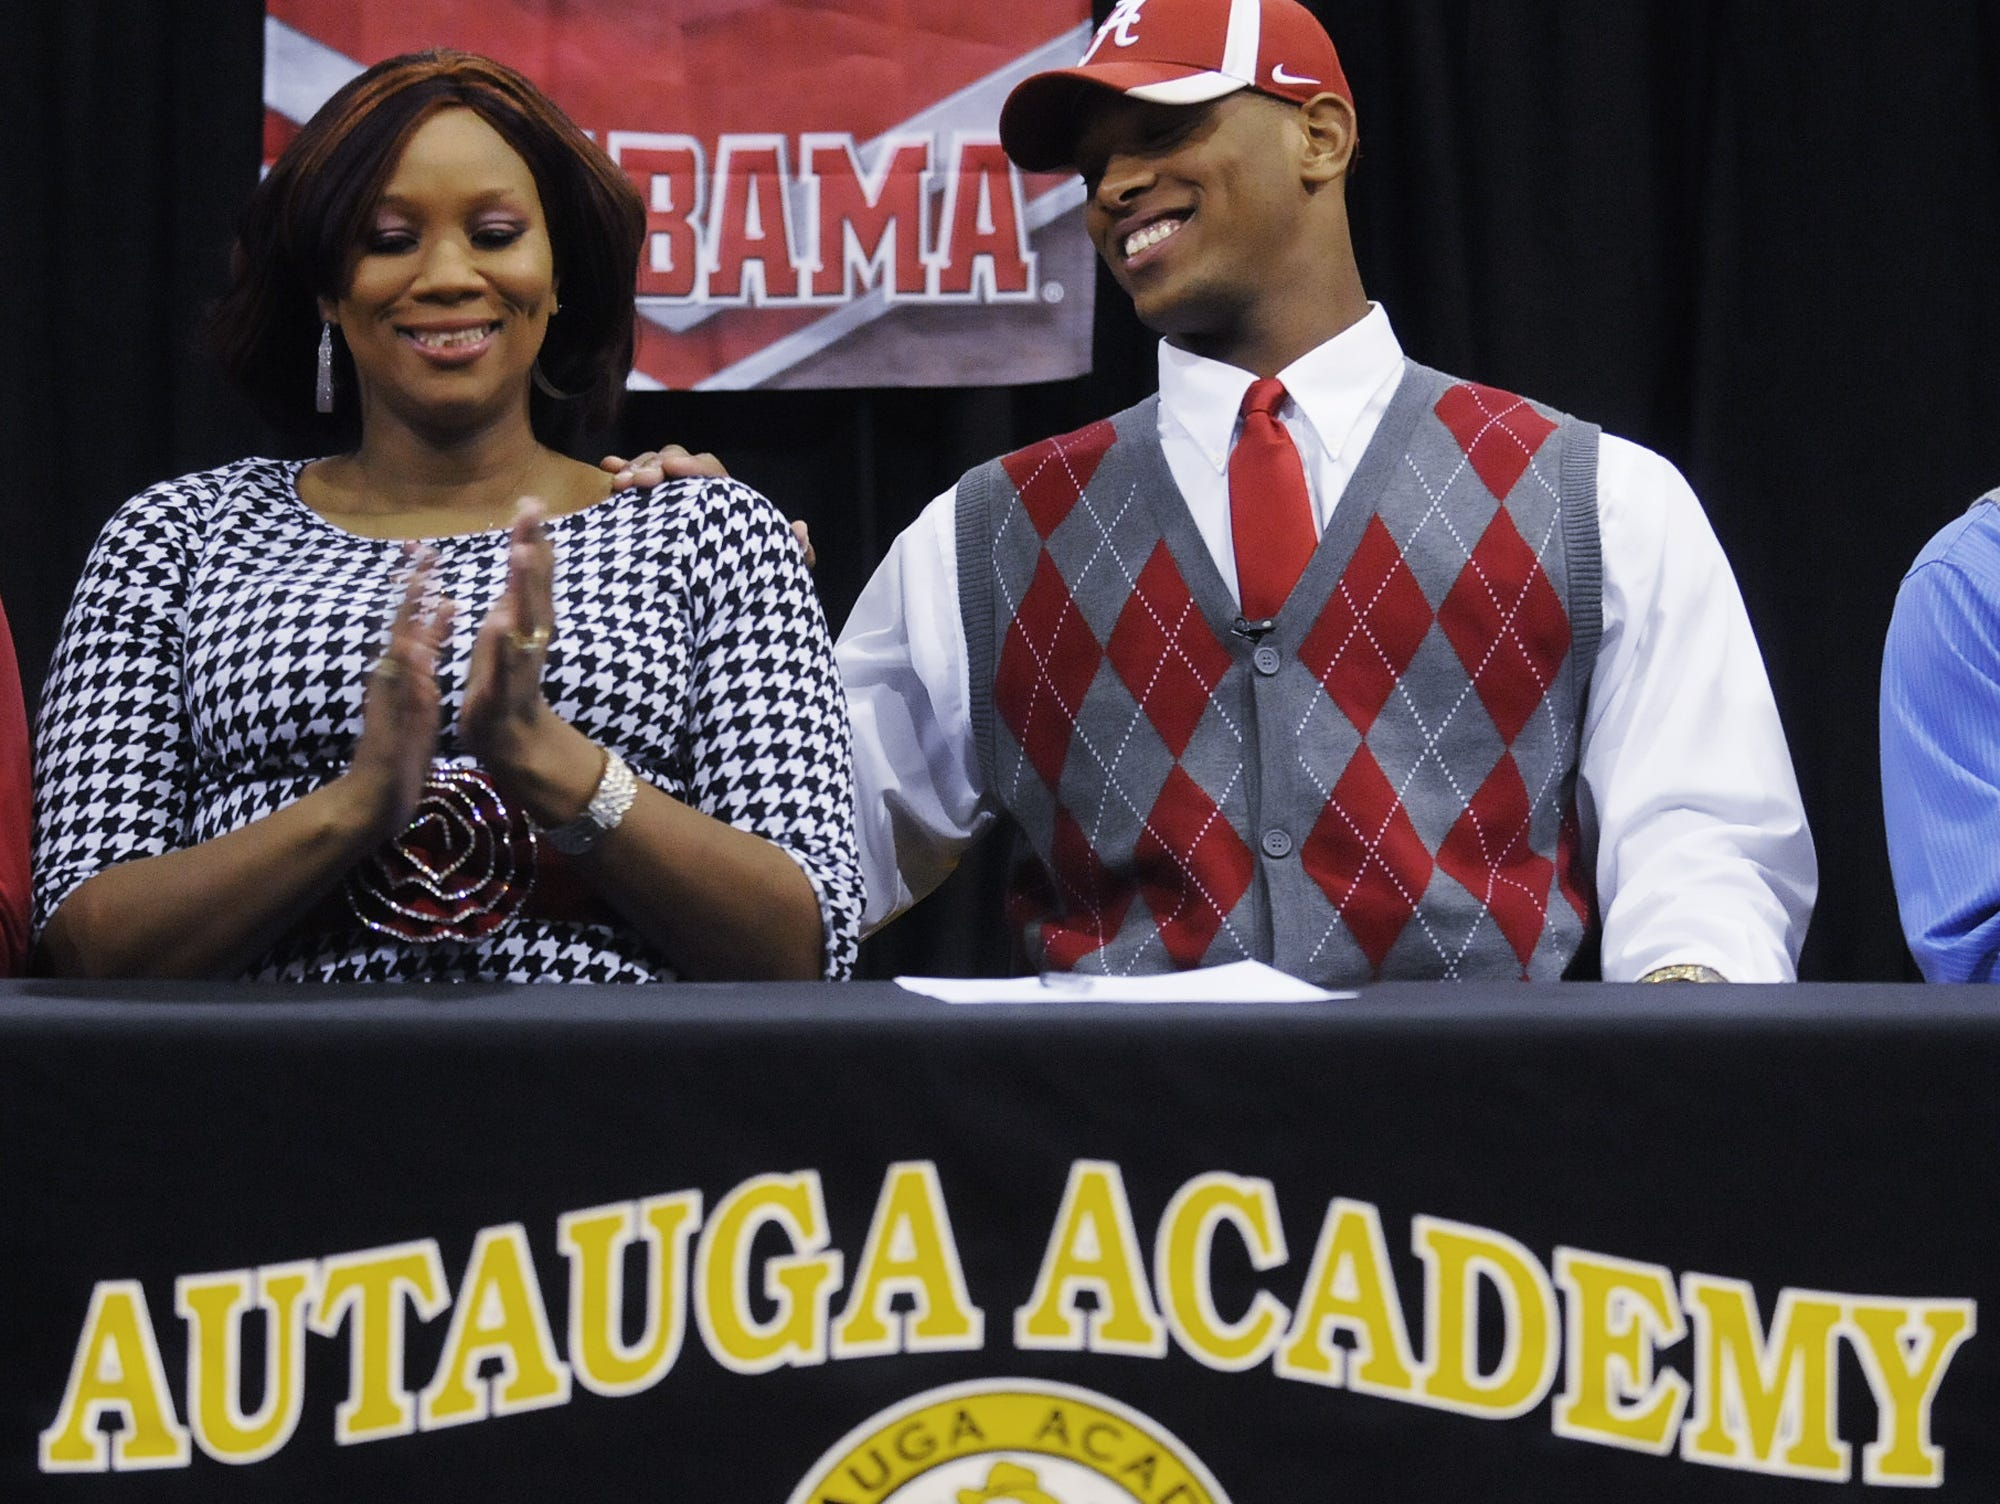 O.J. Howard, who is rated the No. 1 tight end in the country, sits with his mother Lamesa Parker-Howard as he is honored at a ceremony at Autauga Academy on Thursday. Photos by Mickey Welsh/Advertiser Autauga Academy's O.J. Howard sits with his mother Lamesa Howard as he is honored at a ceremony at the school in Prattville, Ala. on Thursday December 13, 2012. Howard will start school at the University of Alabama in January.(Montgomery Advertiser, Mickey Welsh)